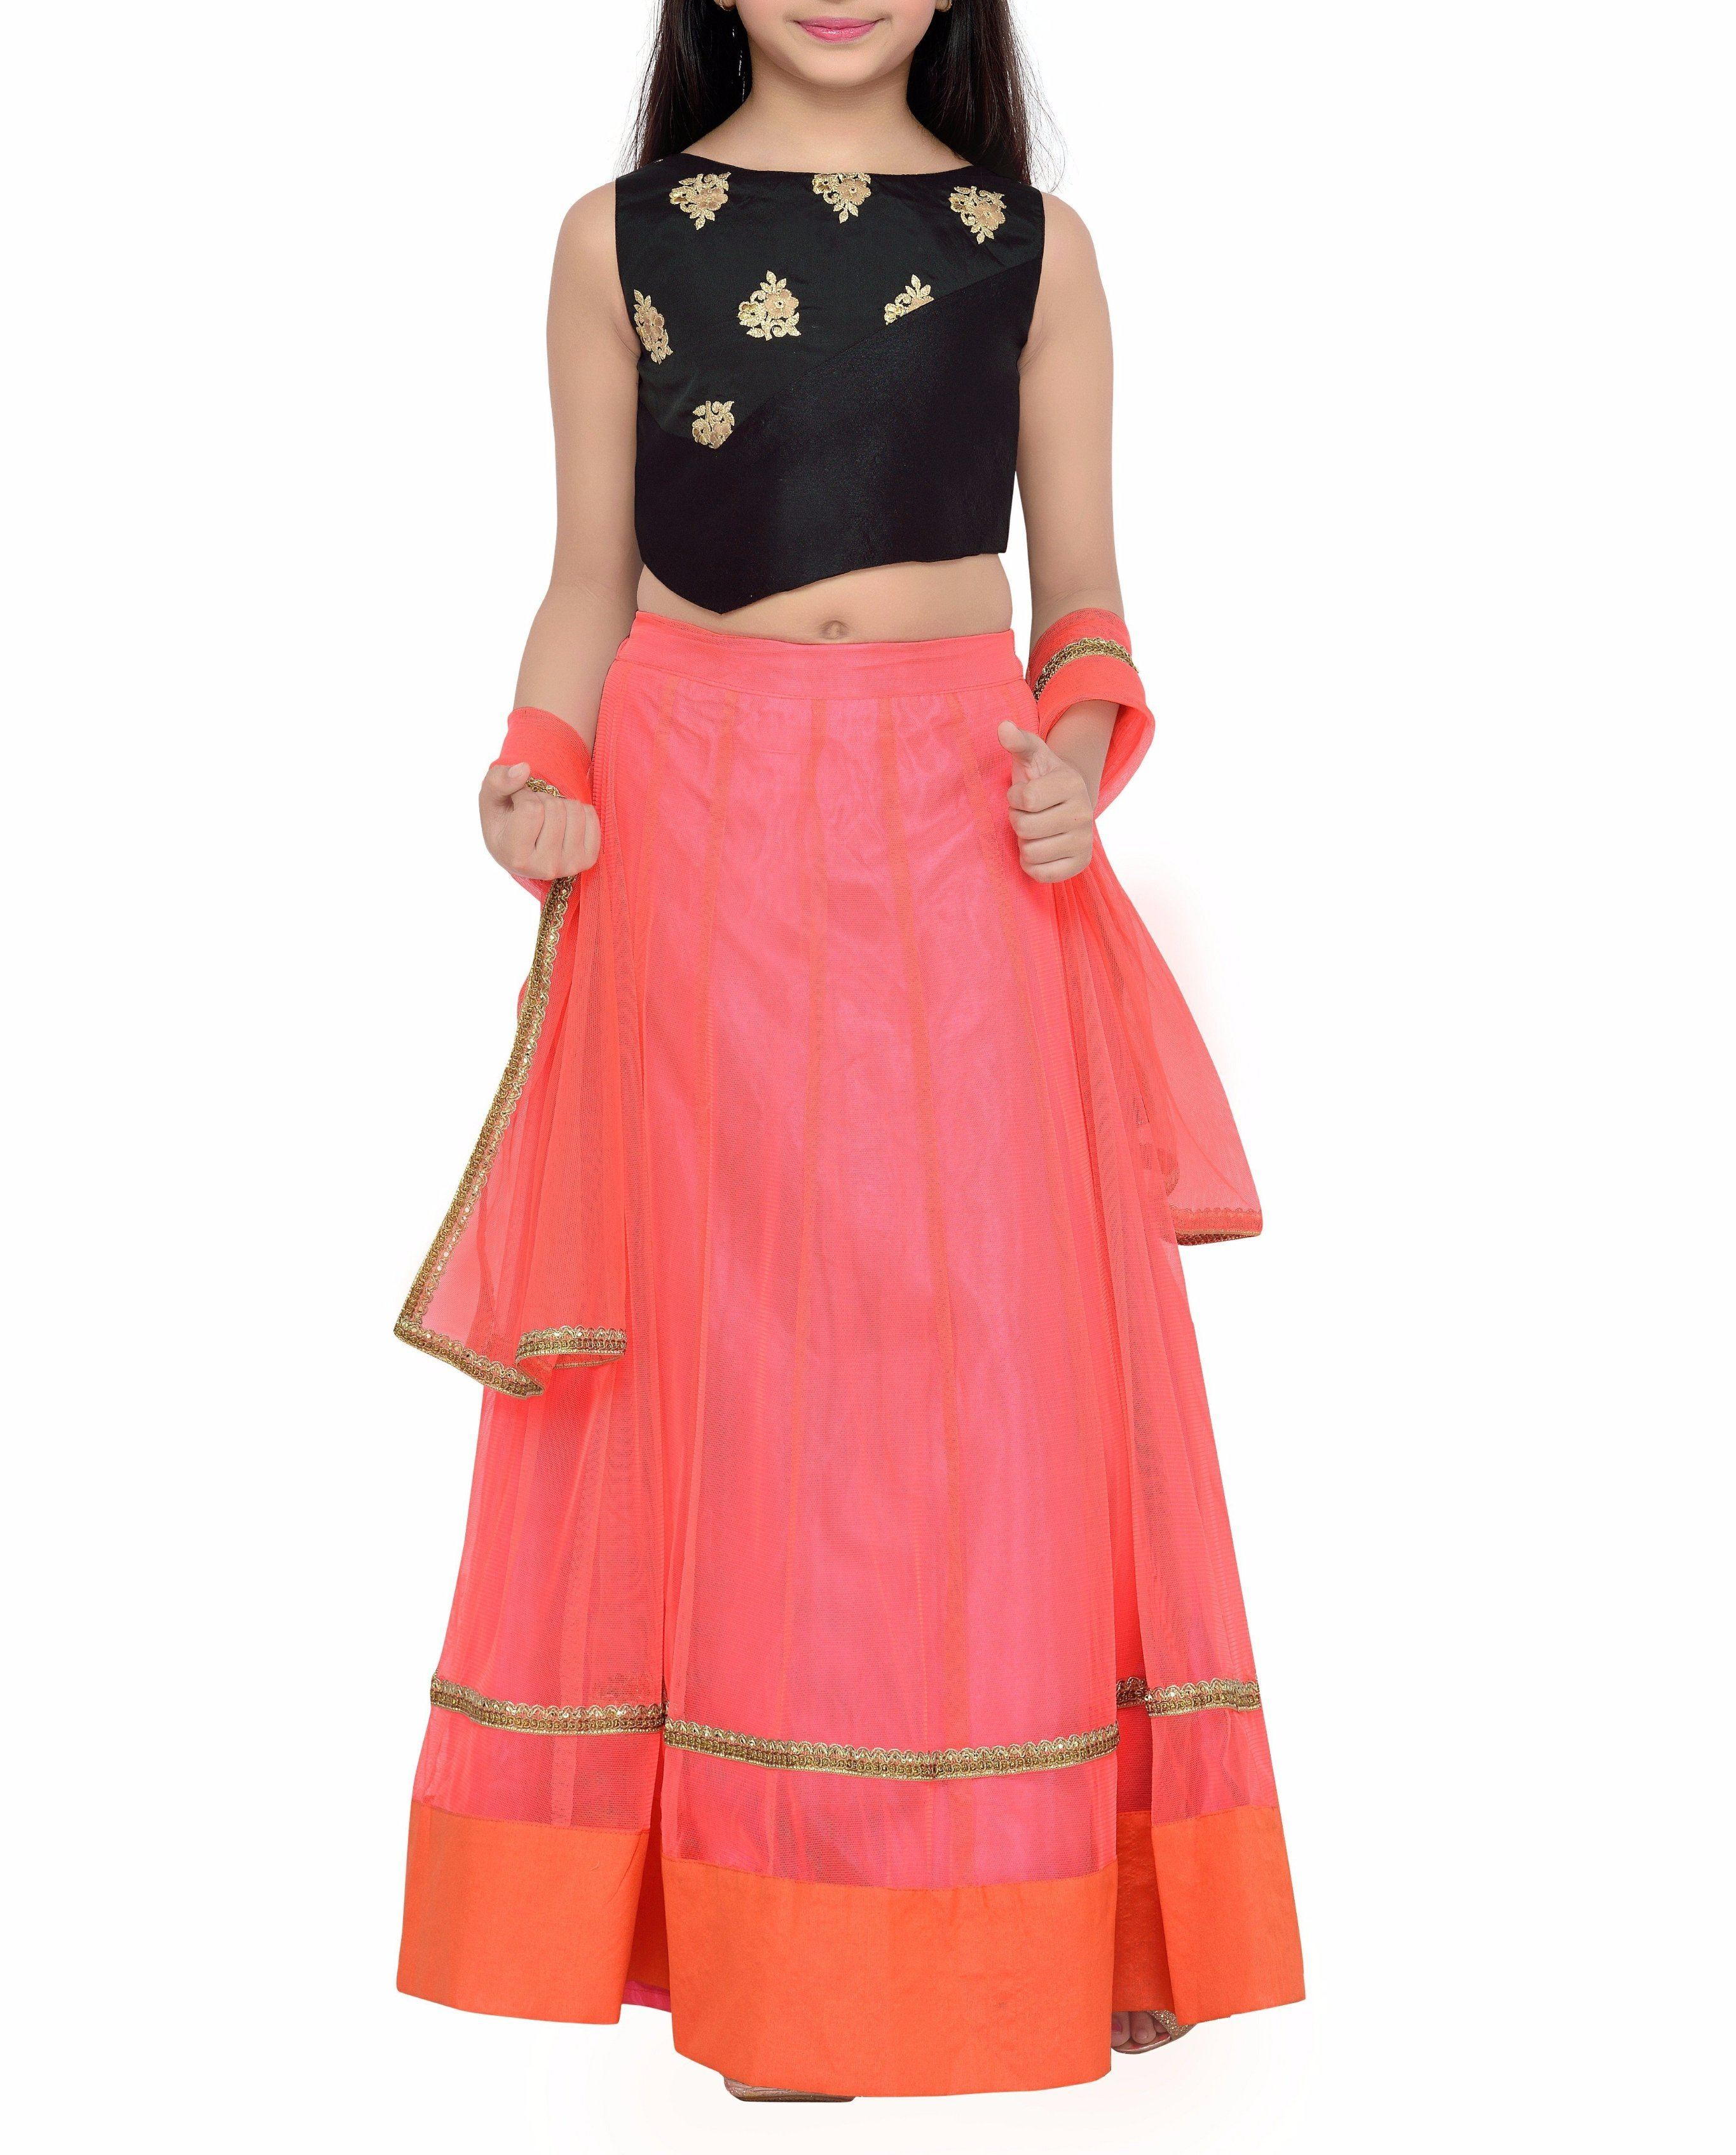 K&U Girls' Black & Orange Net Taffeta Lehenga Choli Lehenga Choli K&U